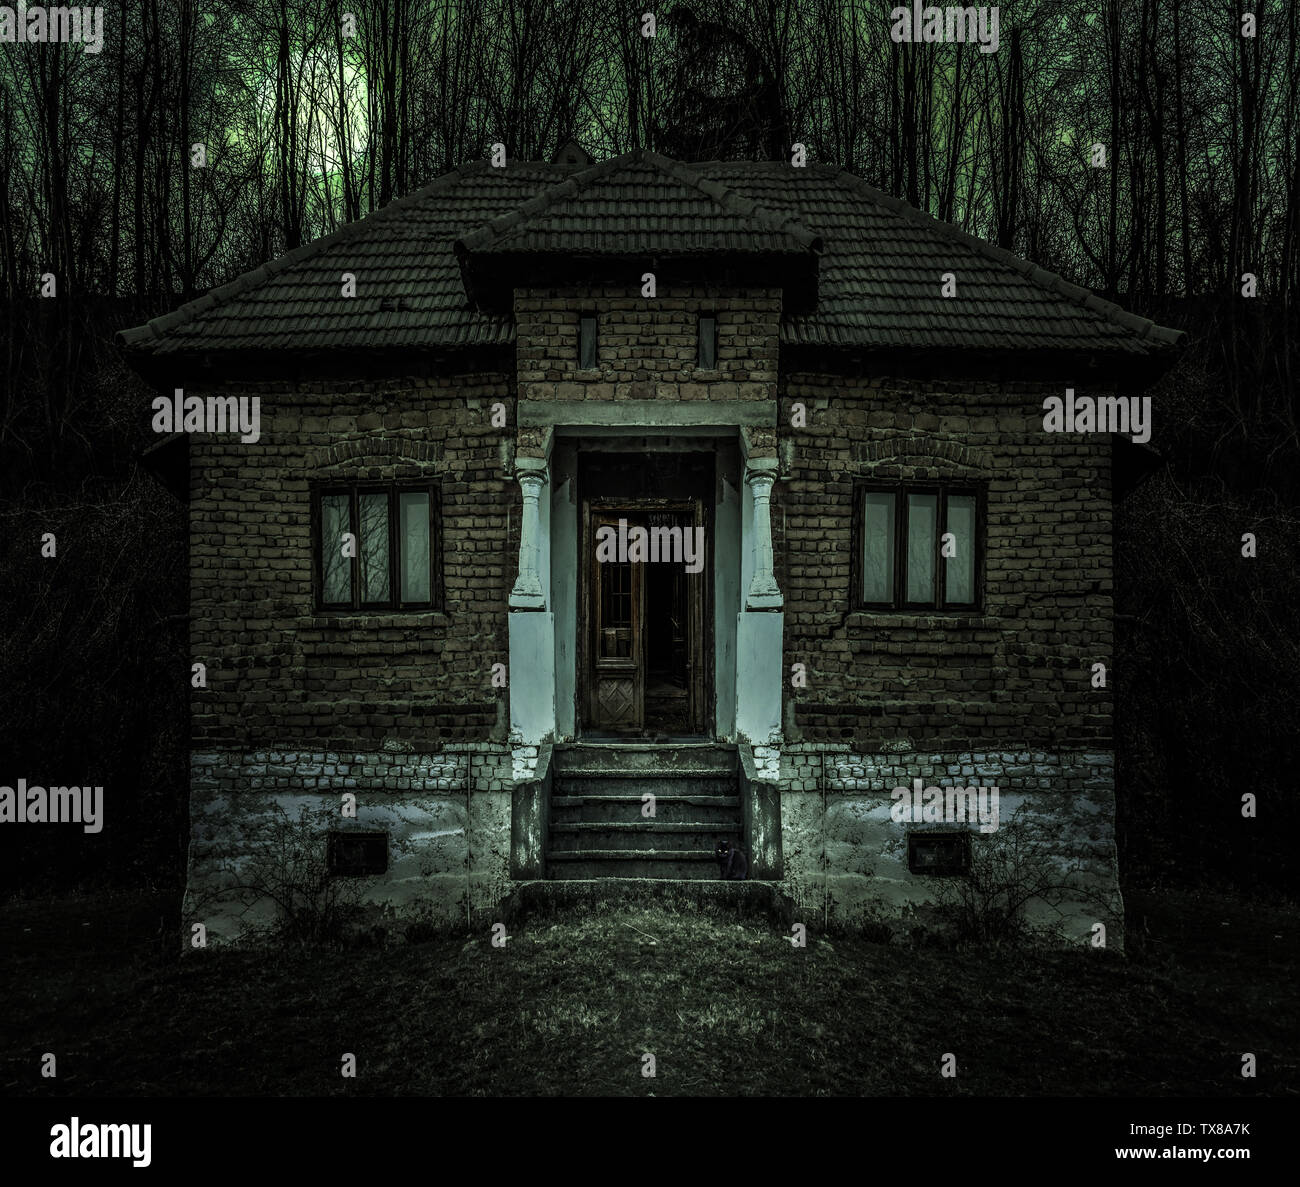 Old Creepy Haunted House With Dark Horror Atmosphere And Scary Details Ancient Abandoned Mansion With Fool Moon And Black Cat In Frightening Scene Li Stock Photo Alamy